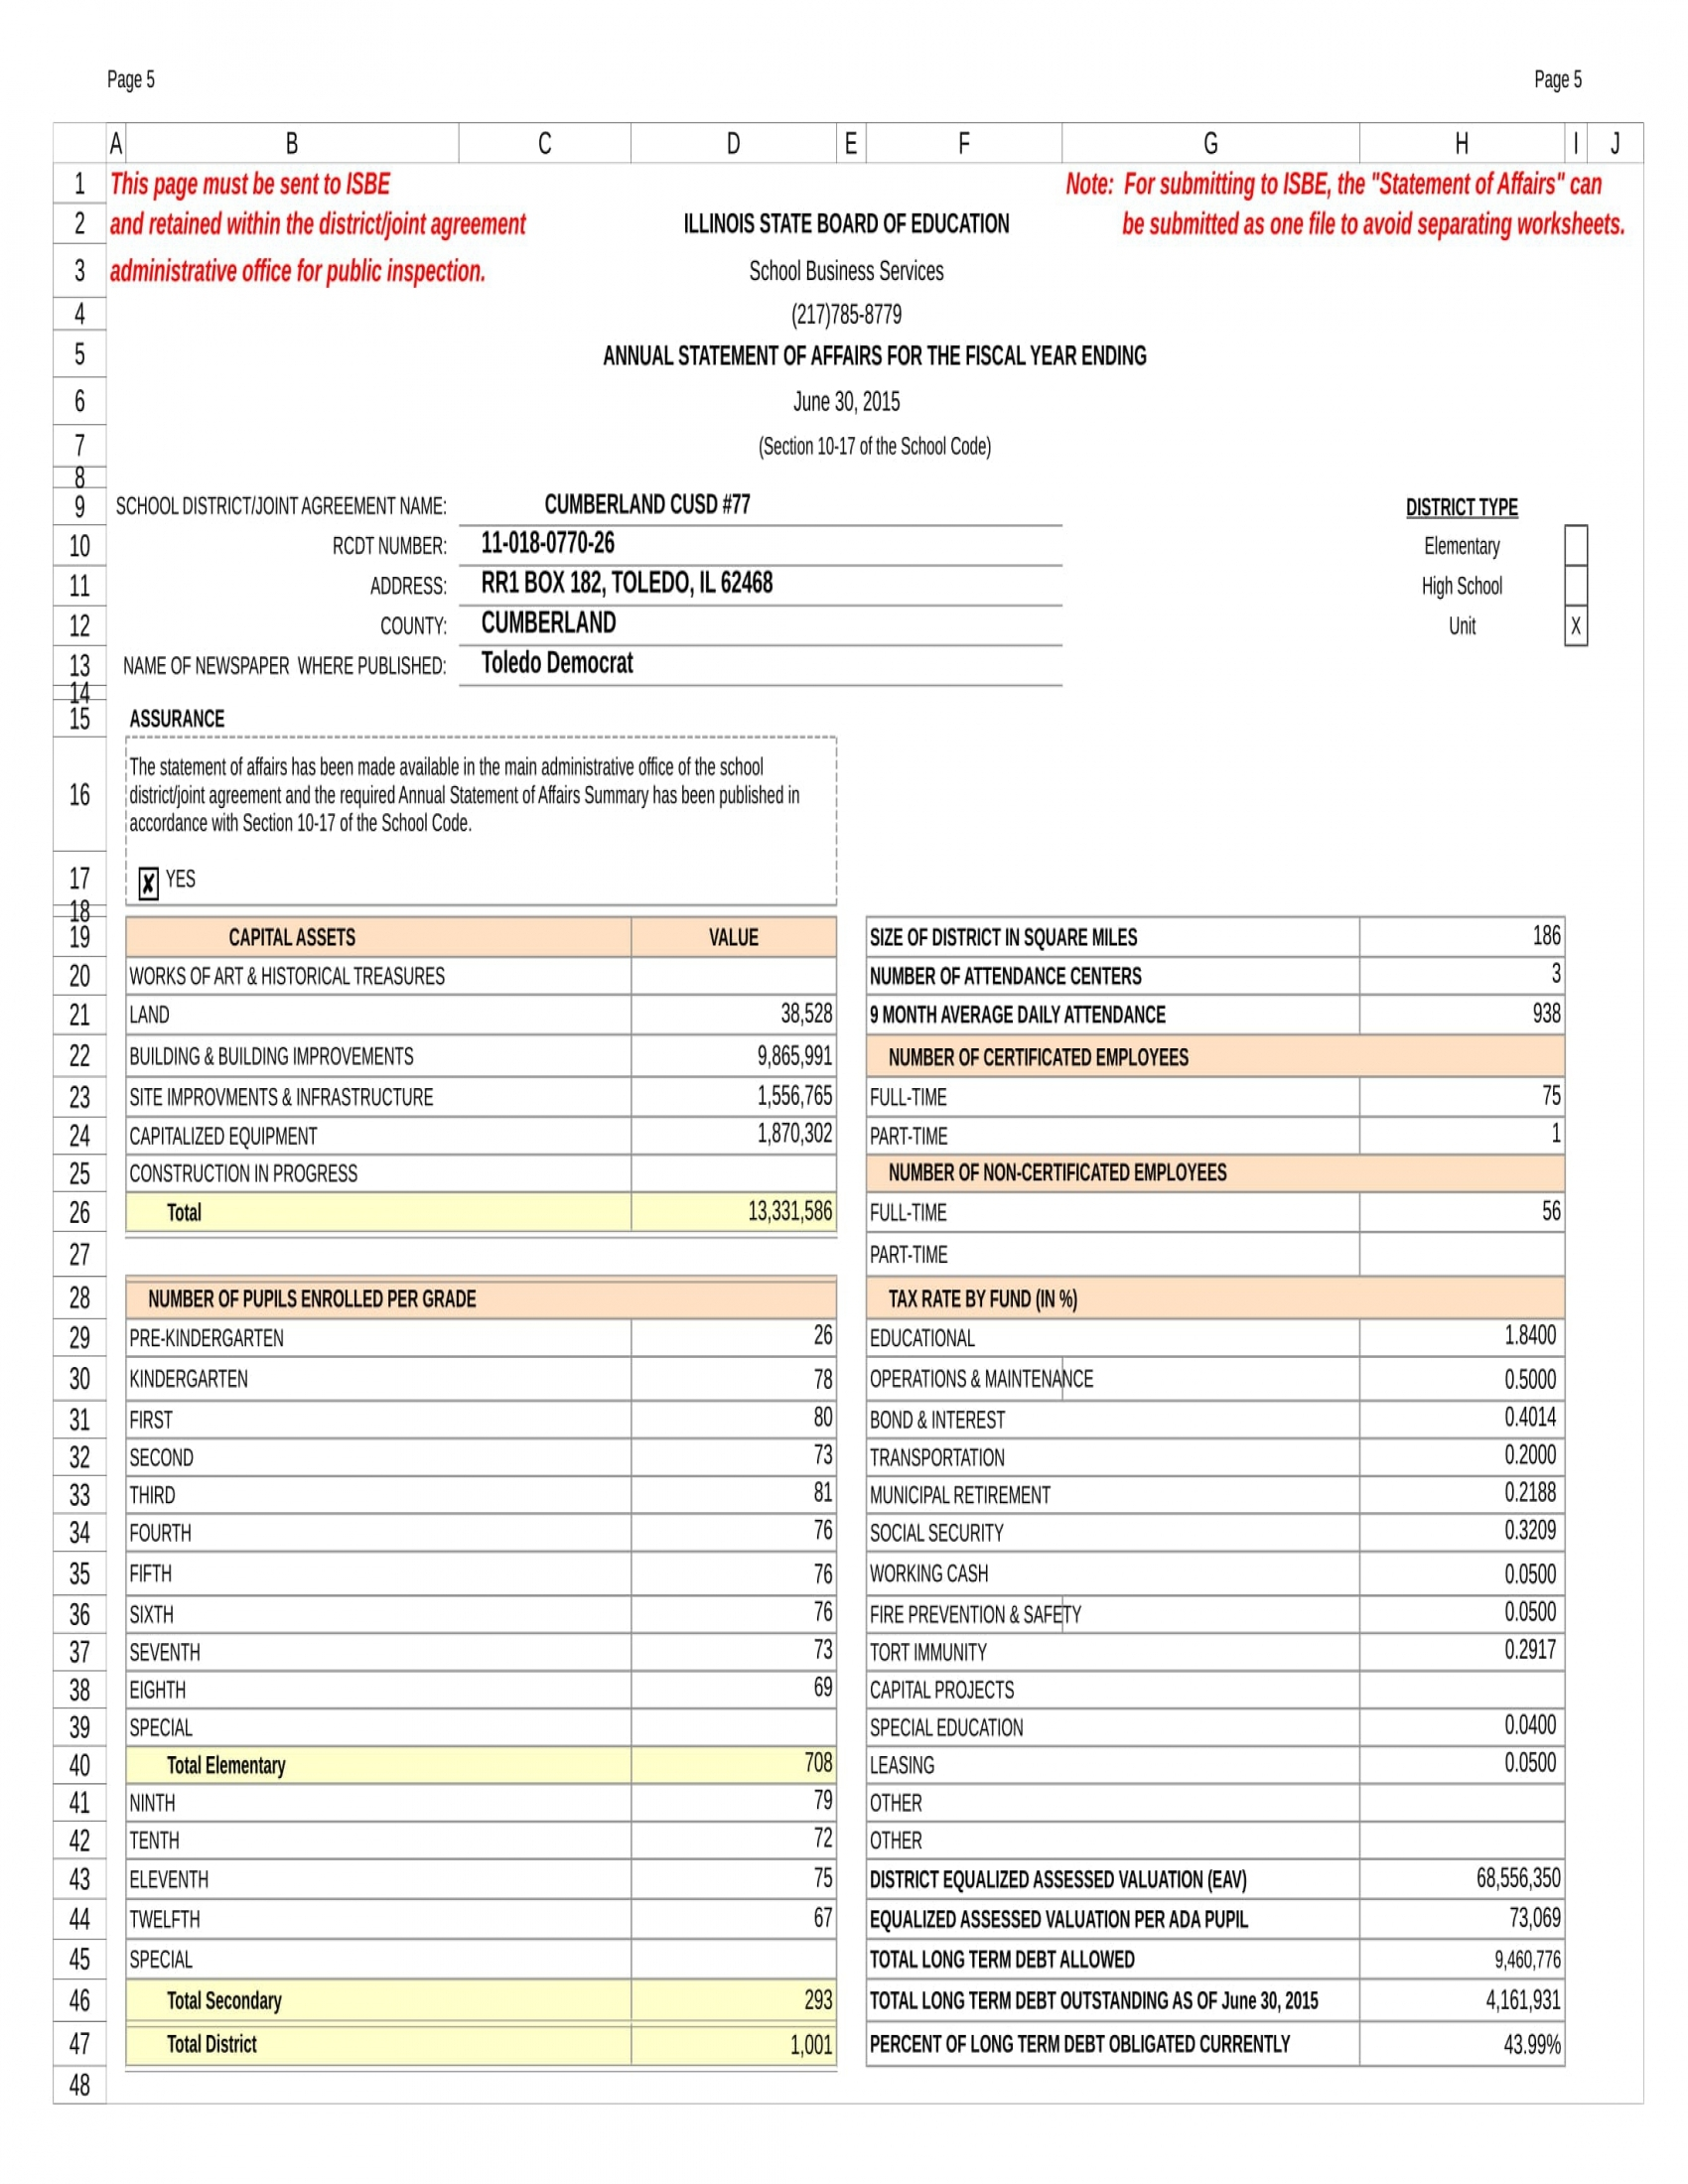 annual statement of affairs form